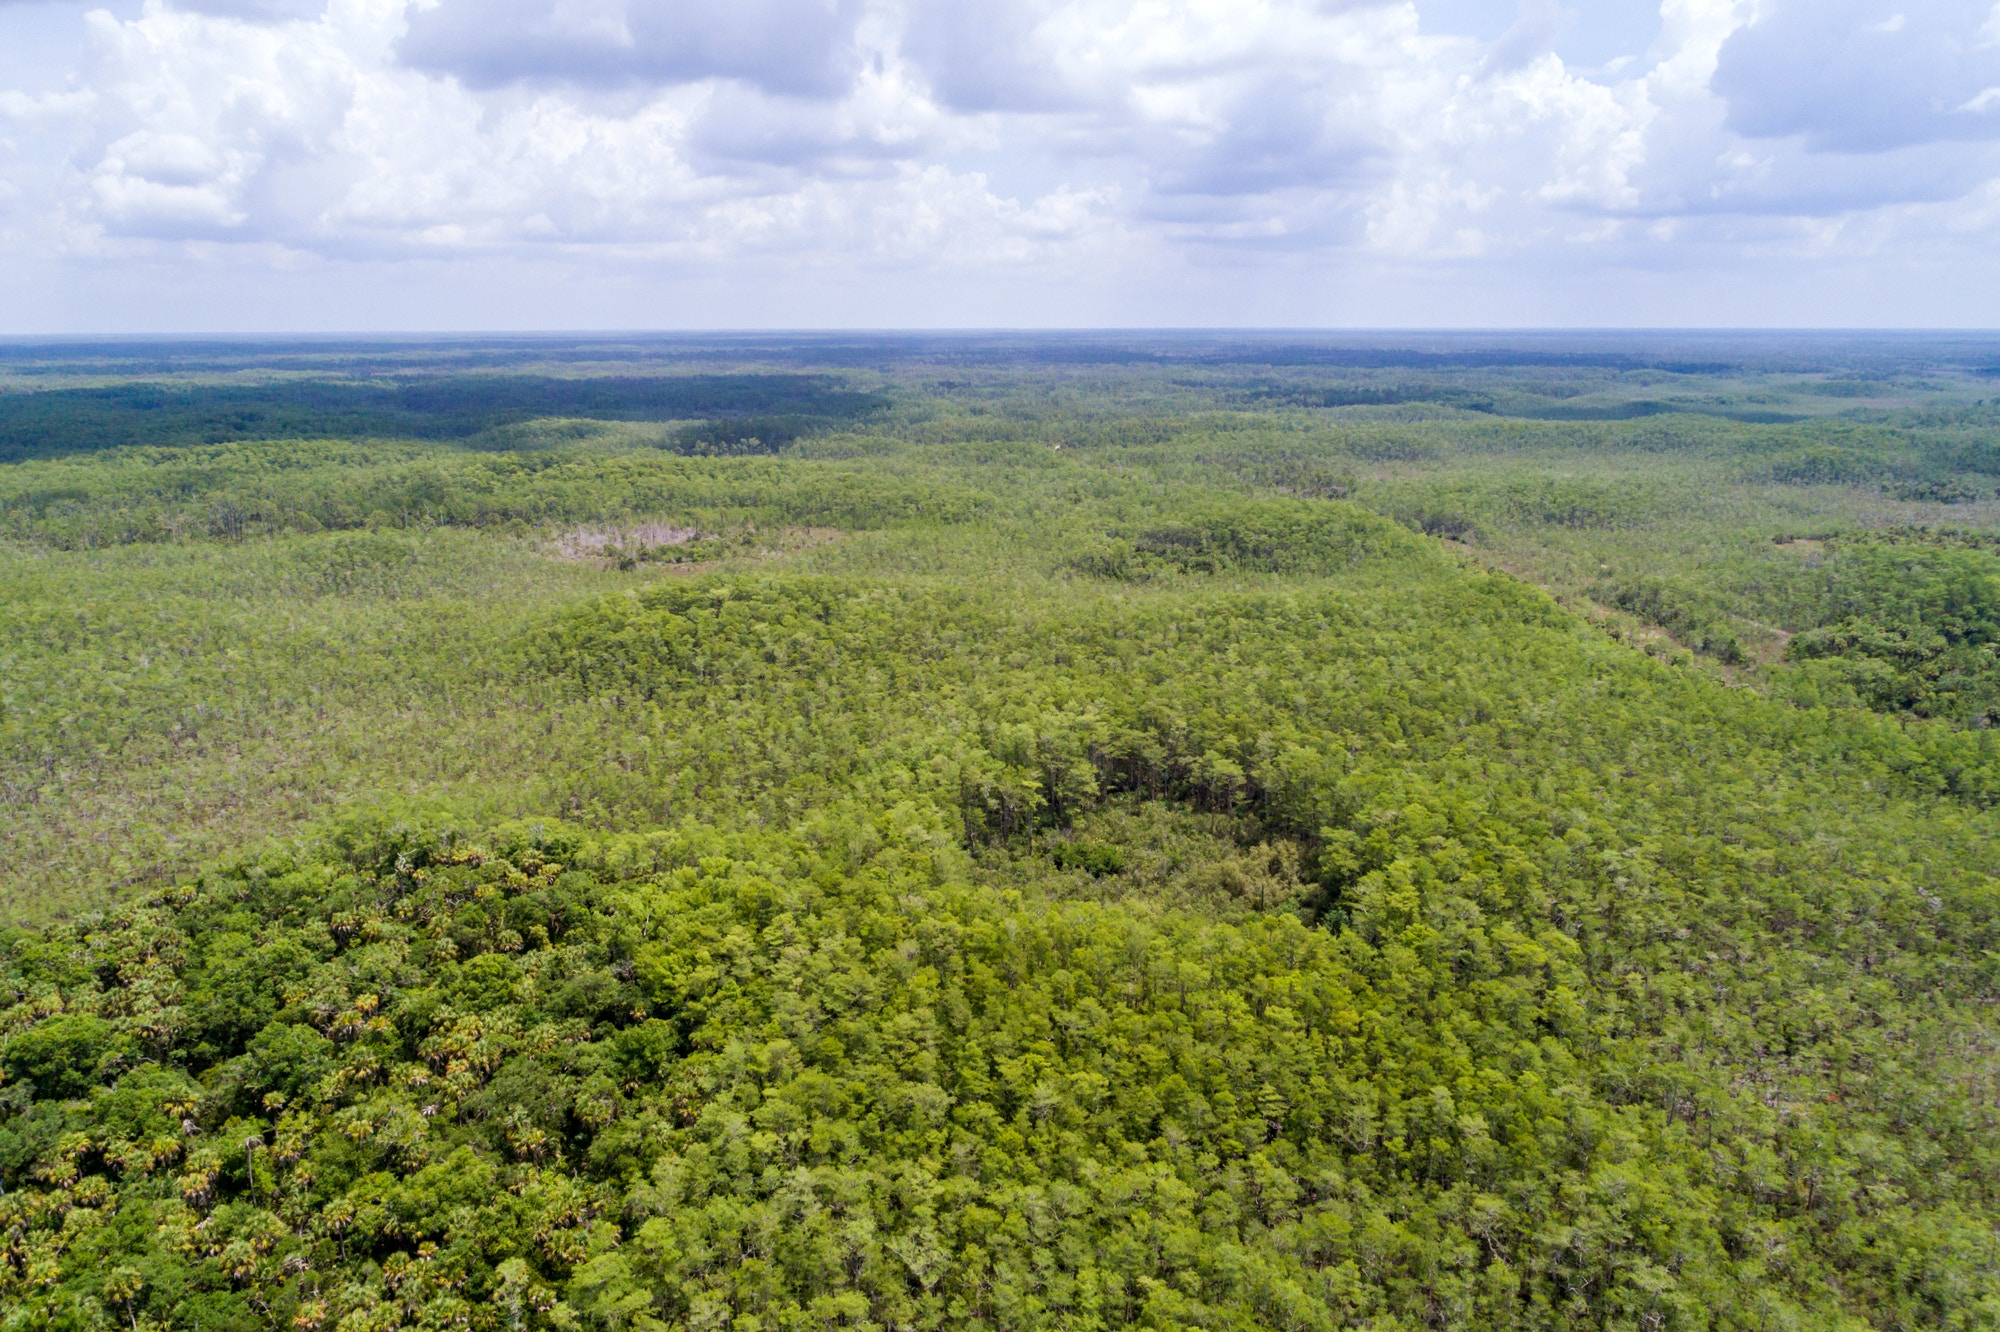 Florida, Naples, Everglades, Big Cypress National Preserve. (Photo by: Jeffrey Greenberg/Education Images/Universal Images Group via Getty Images)